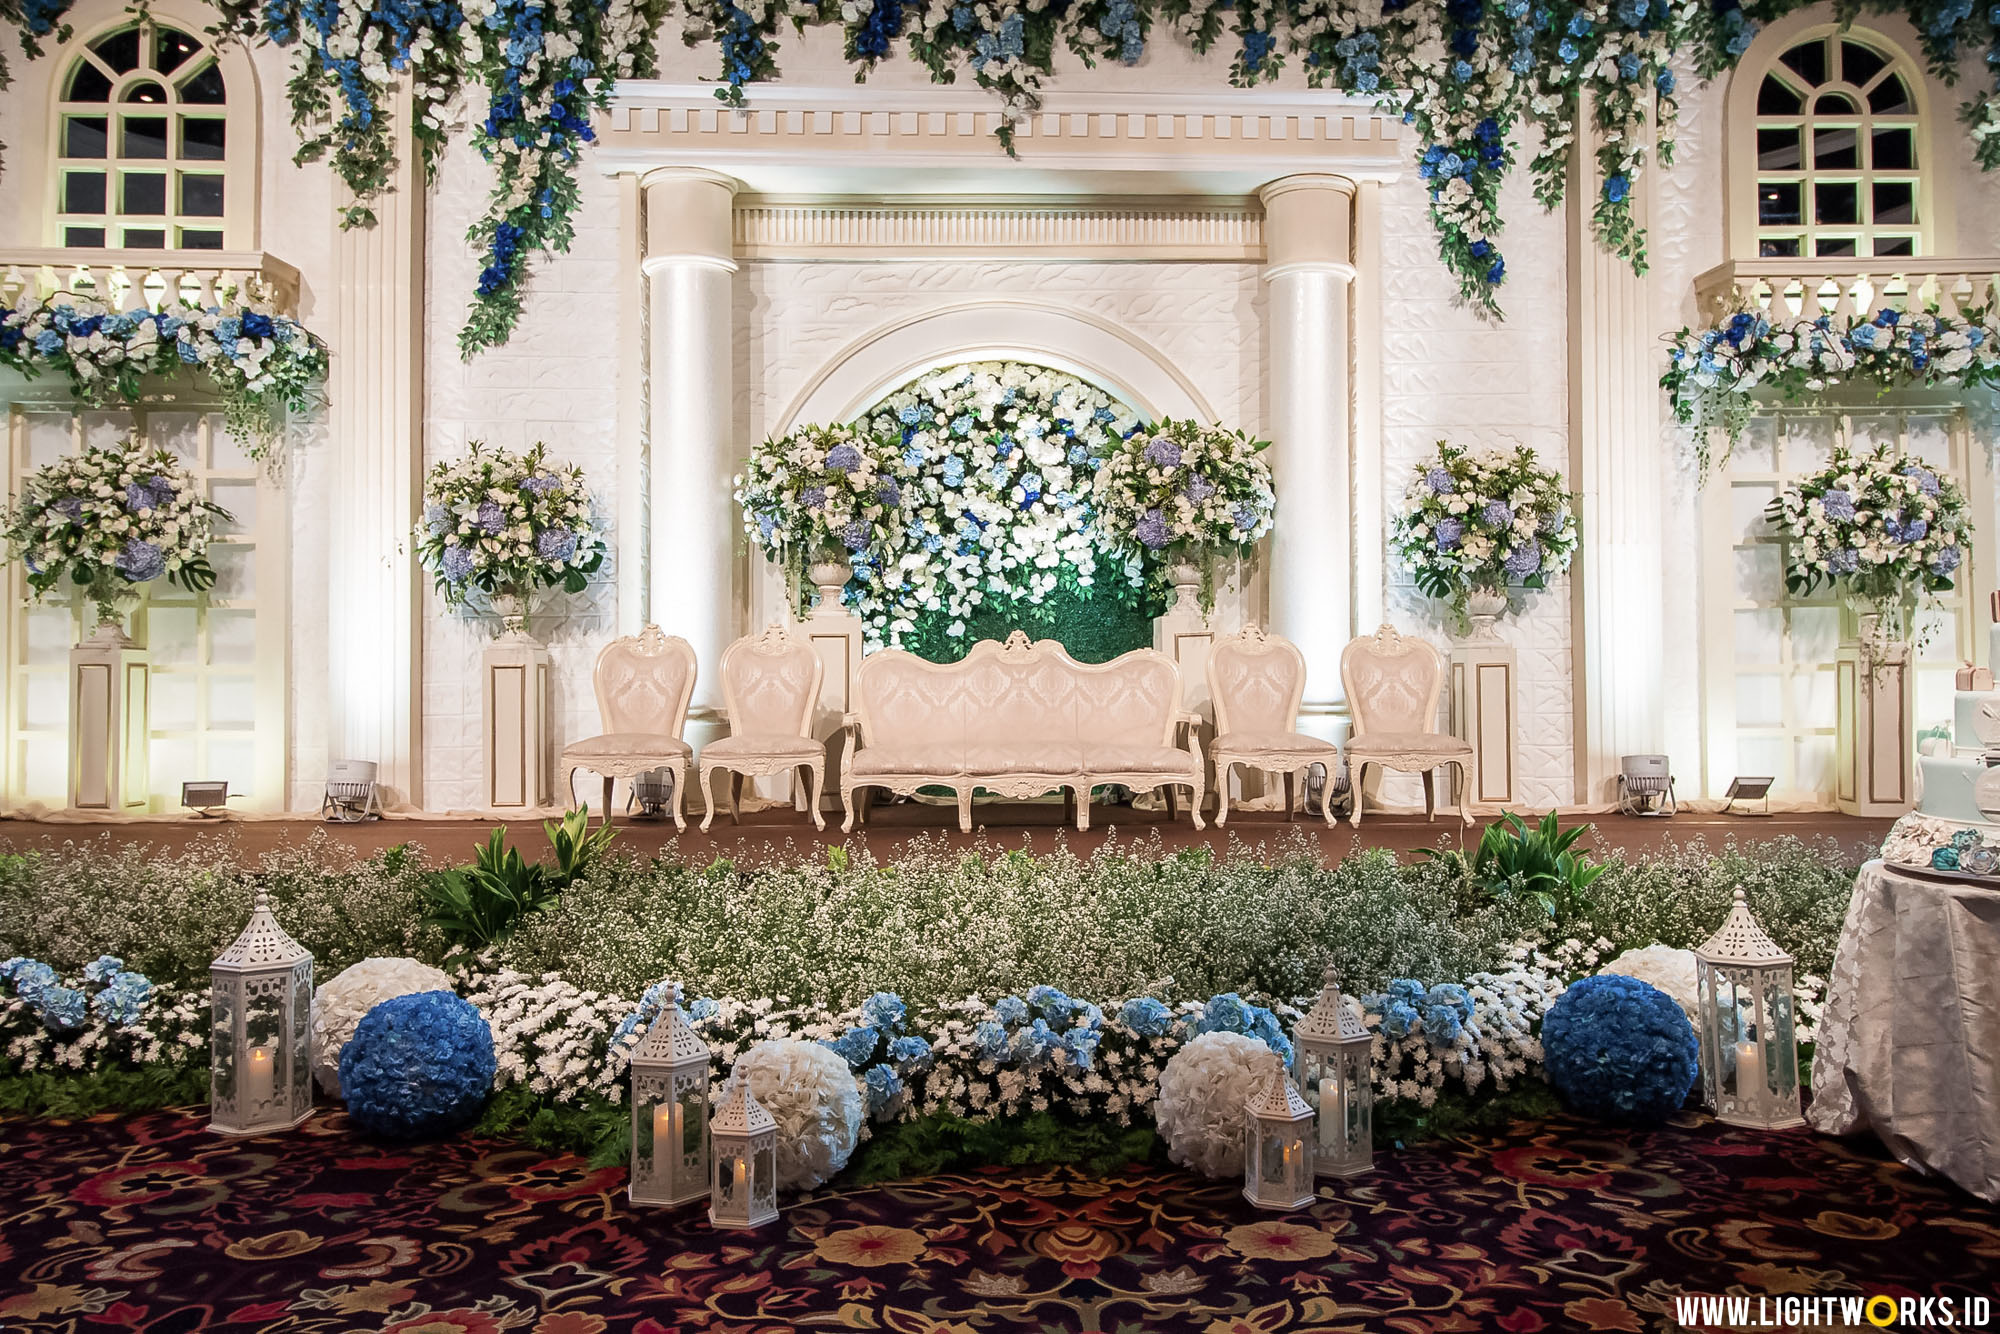 The wedding of Nikko and Fania | Venue at Sampoerna Strategic Square | Decoration by Grasida Decor | Organised by Kreativ Things | Gown by Fetty Rusli | MUA by Adi Adrian | Catering by Akasya Catering & Co. | Cake by LeNovelle Cake | Entertainment by Kana Entertainment | Florist by Lily Florist & Decoration and Grasida Decor | Photobooth by Moments To Go | Invitation by Honey Cards | Souvenier by Red Ribbon Gift | Lighting designer by Epafras Septian | Lighting coordinator by Meyliana Tan | Lighting by Lightworks